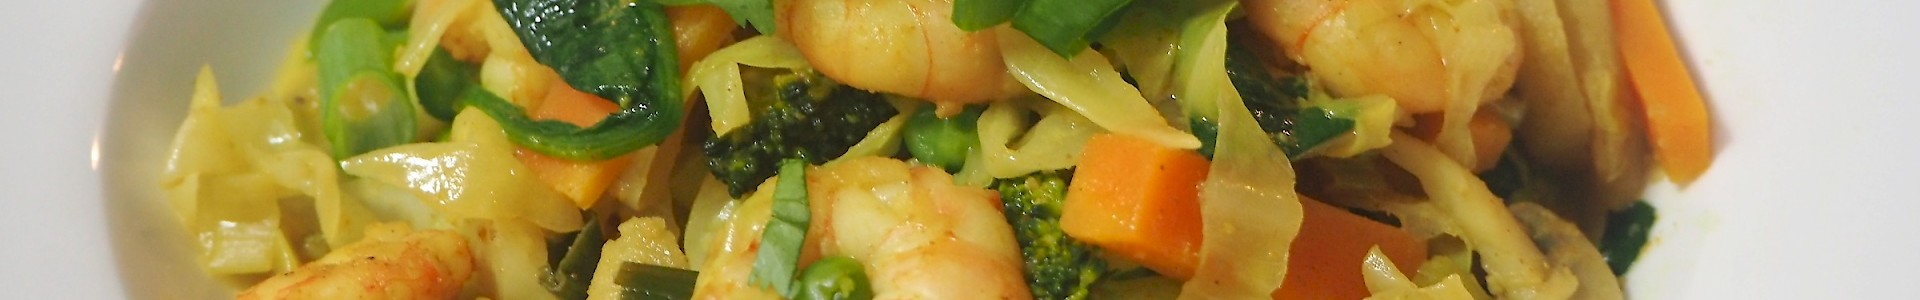 Curried Prawn Stir Fry